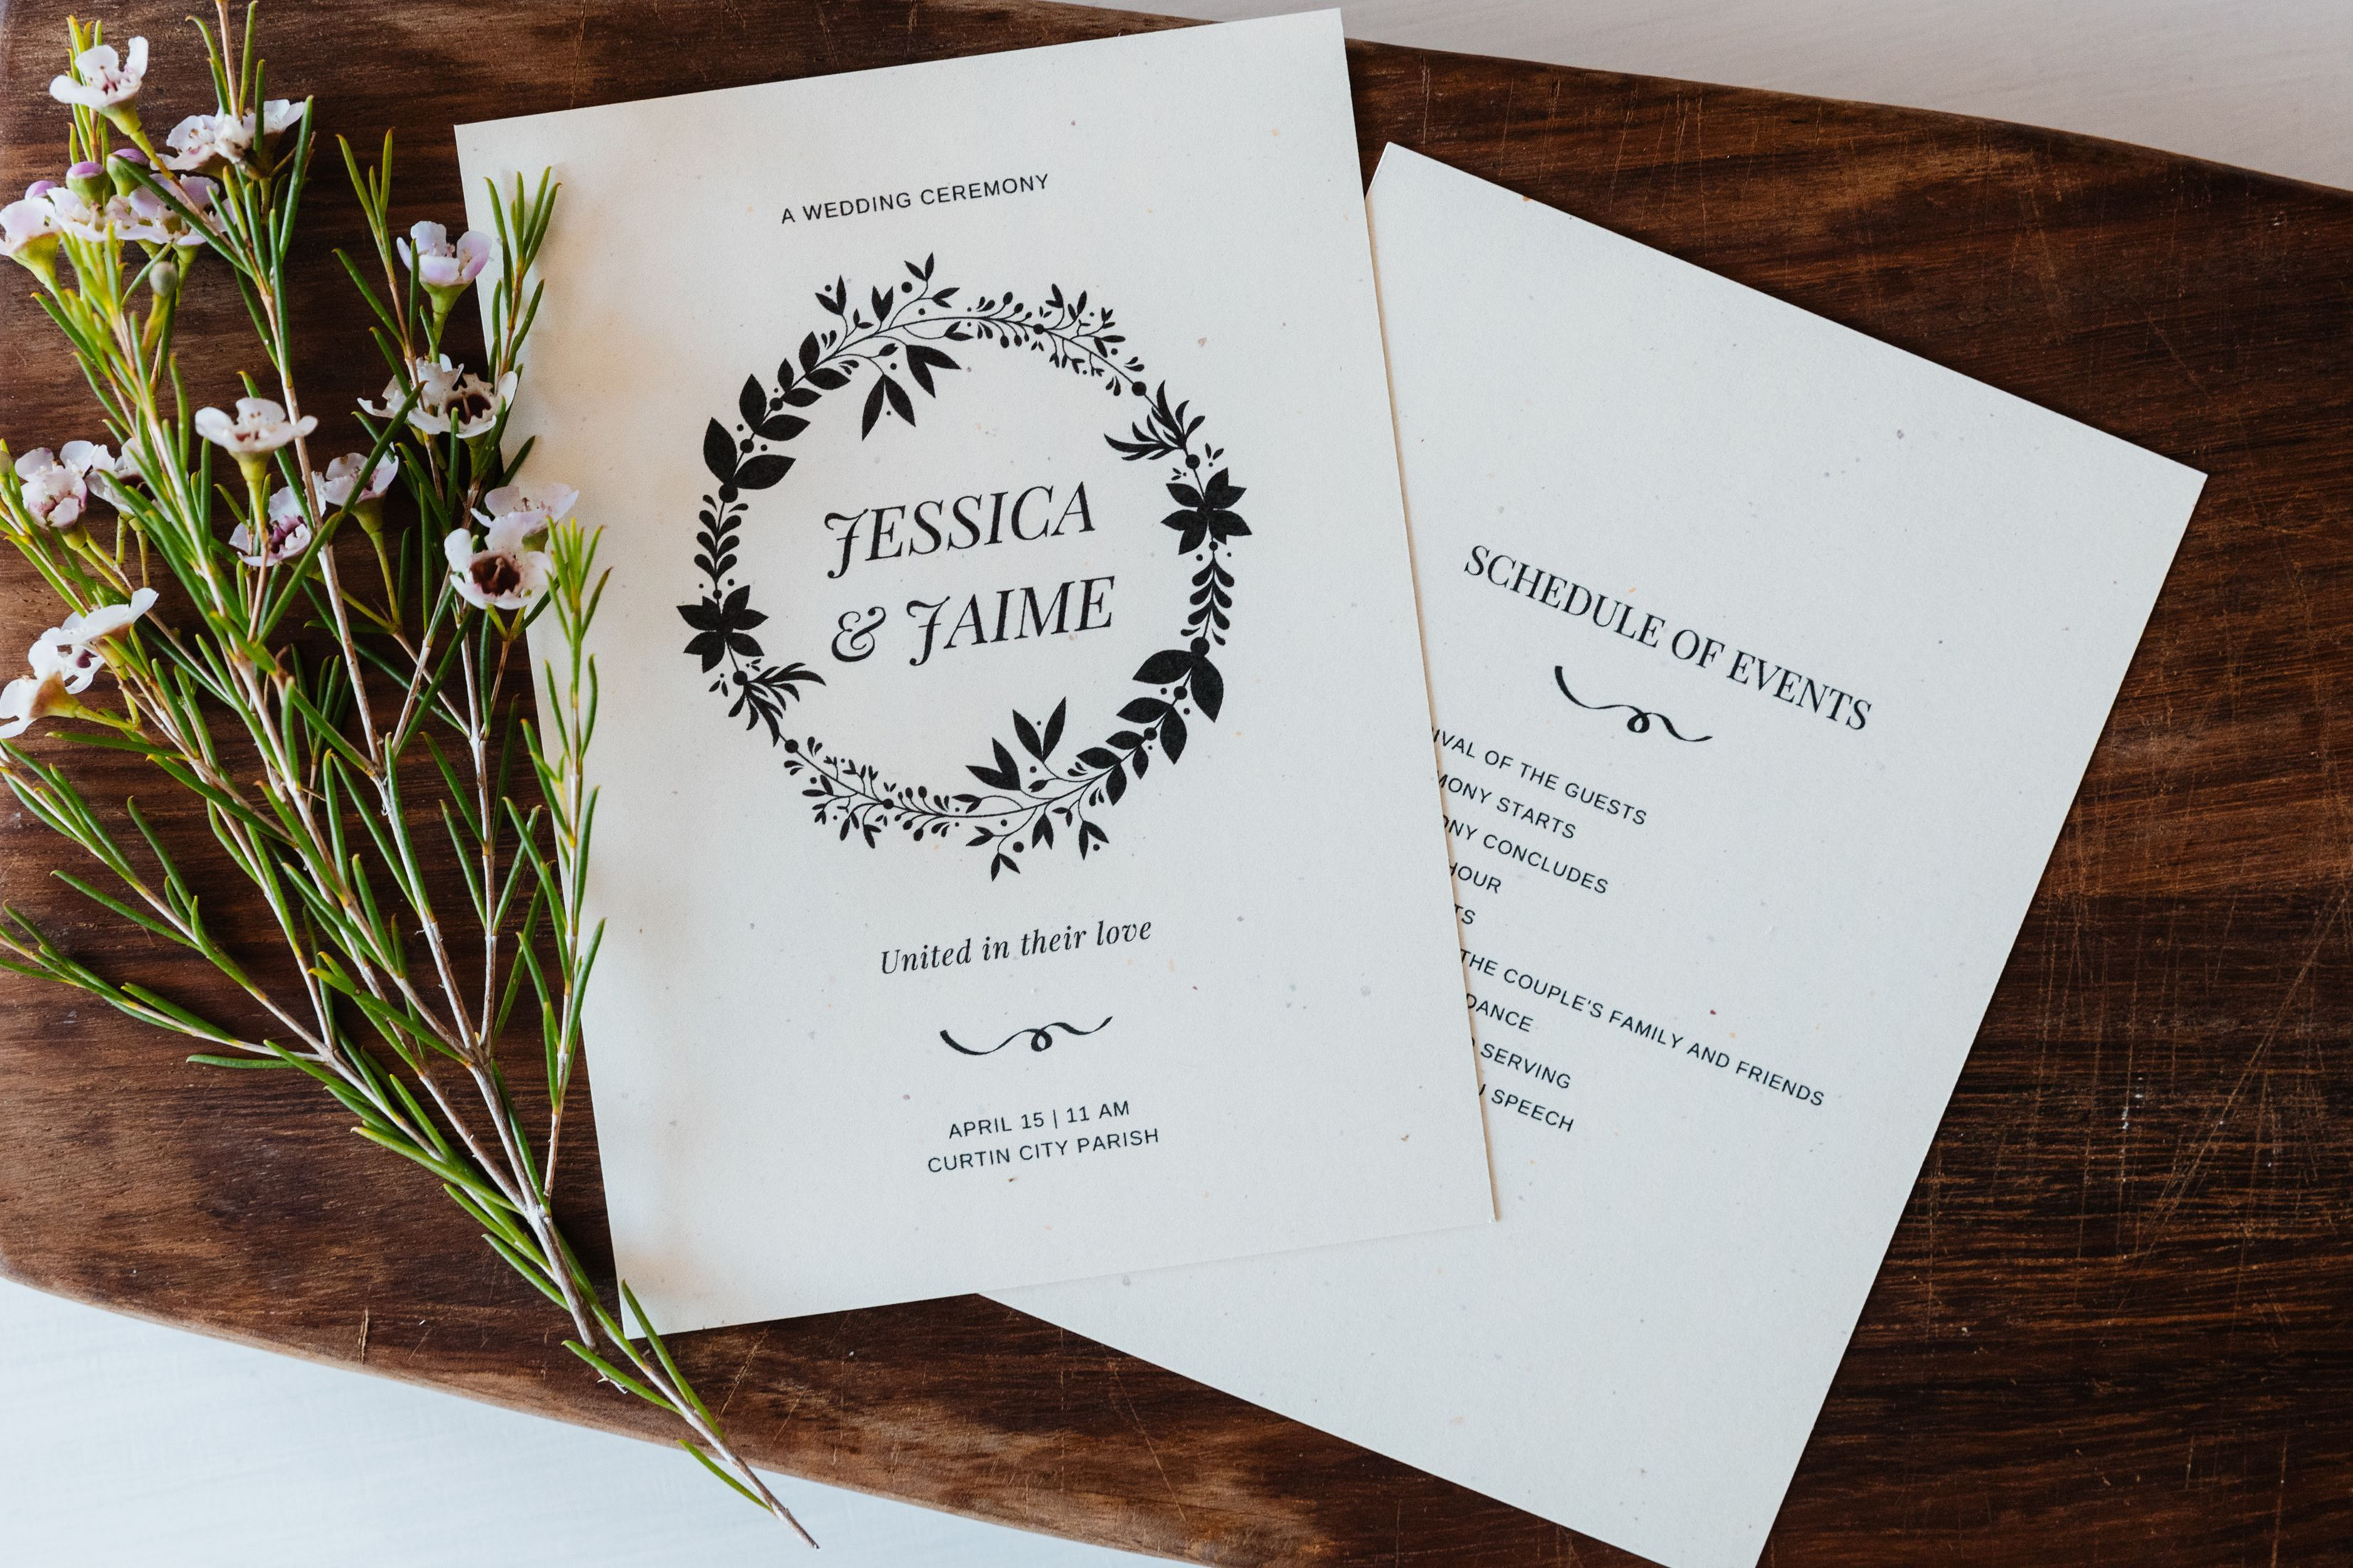 008 Surprising Wedding Order Of Service Template Free Download Example  Downloadable That Can Be PrintedFull